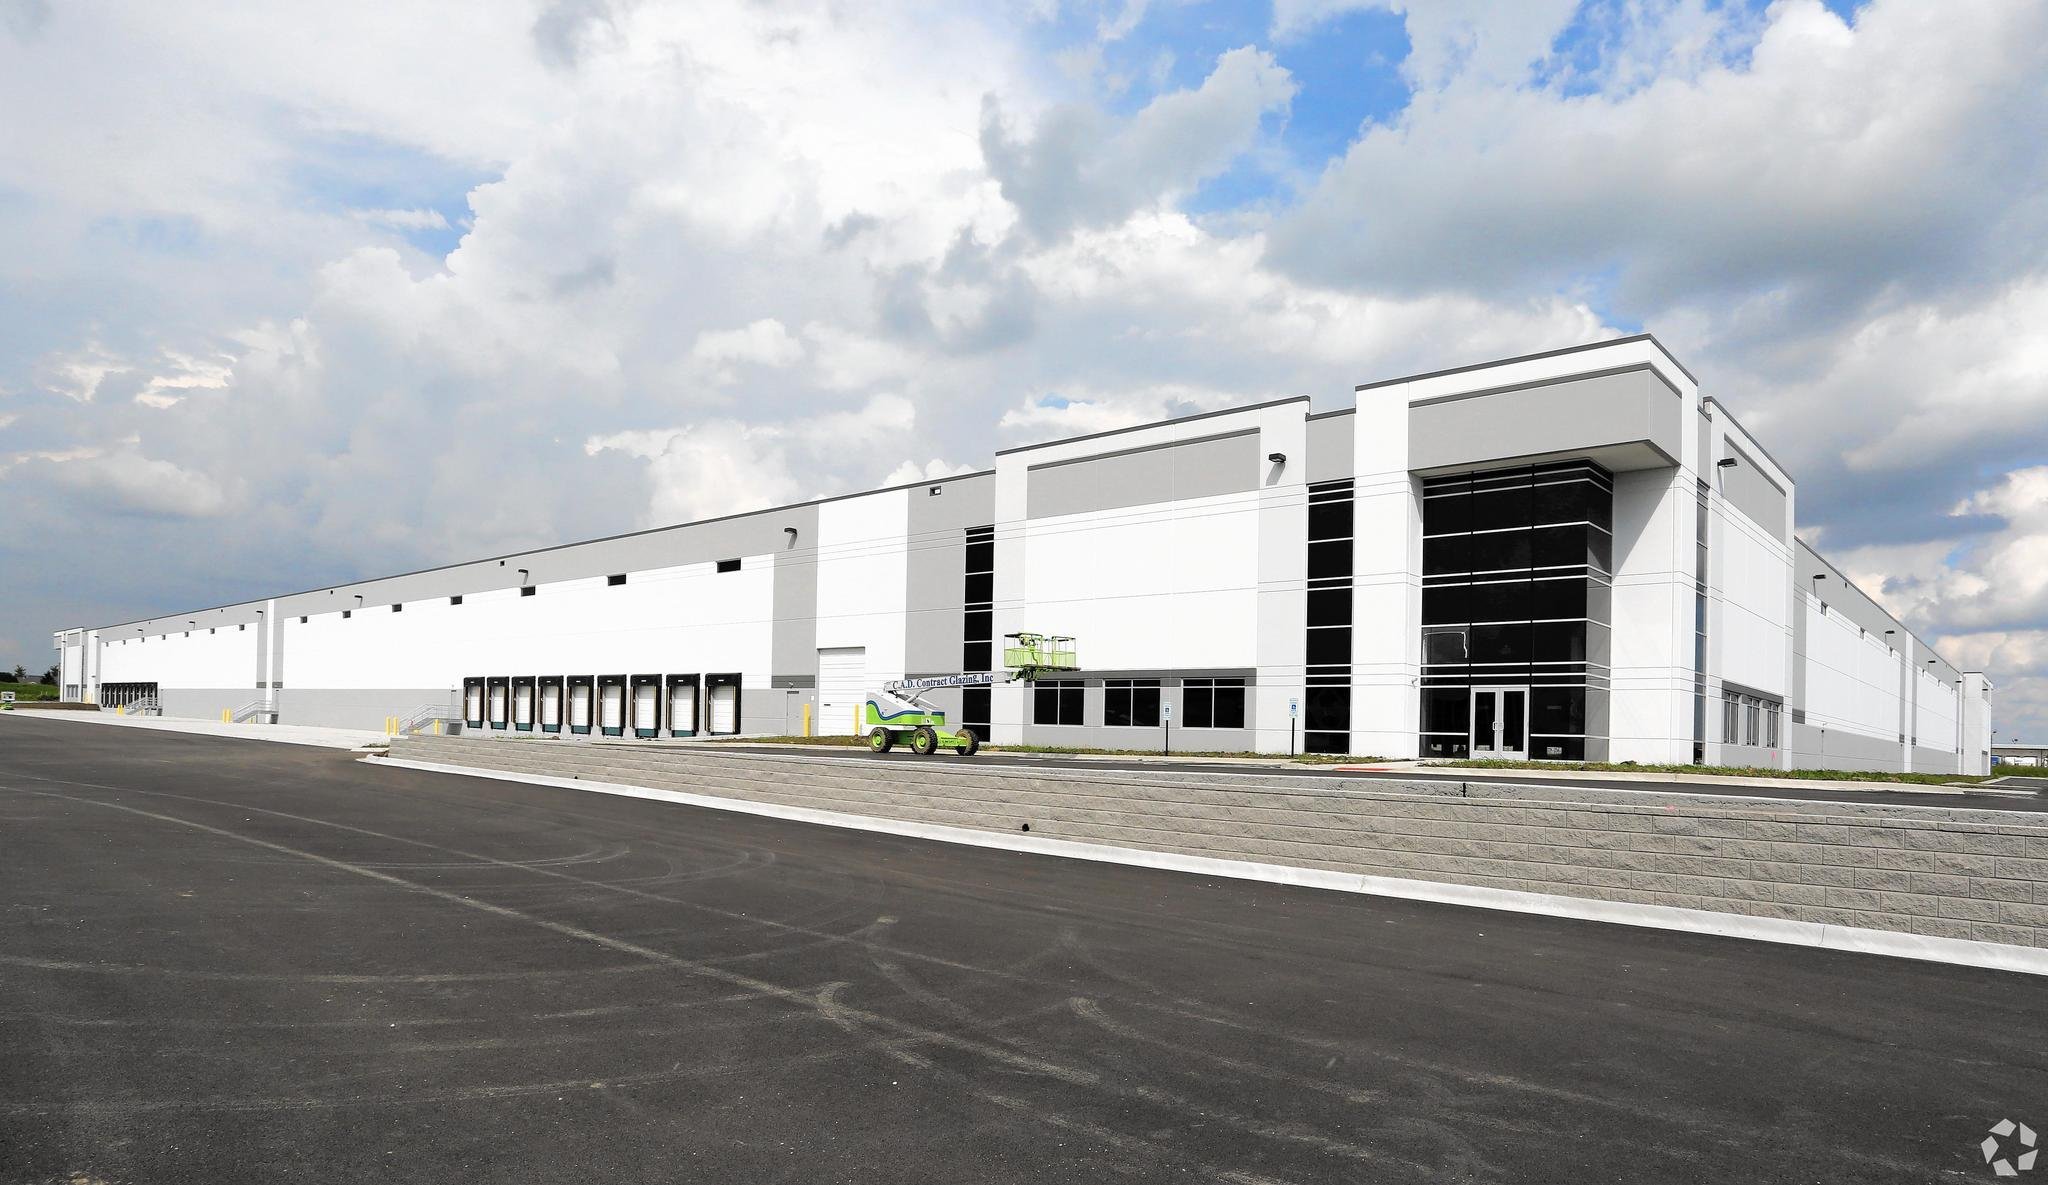 Amazon plans 440,000-square-foot warehouse in southwest